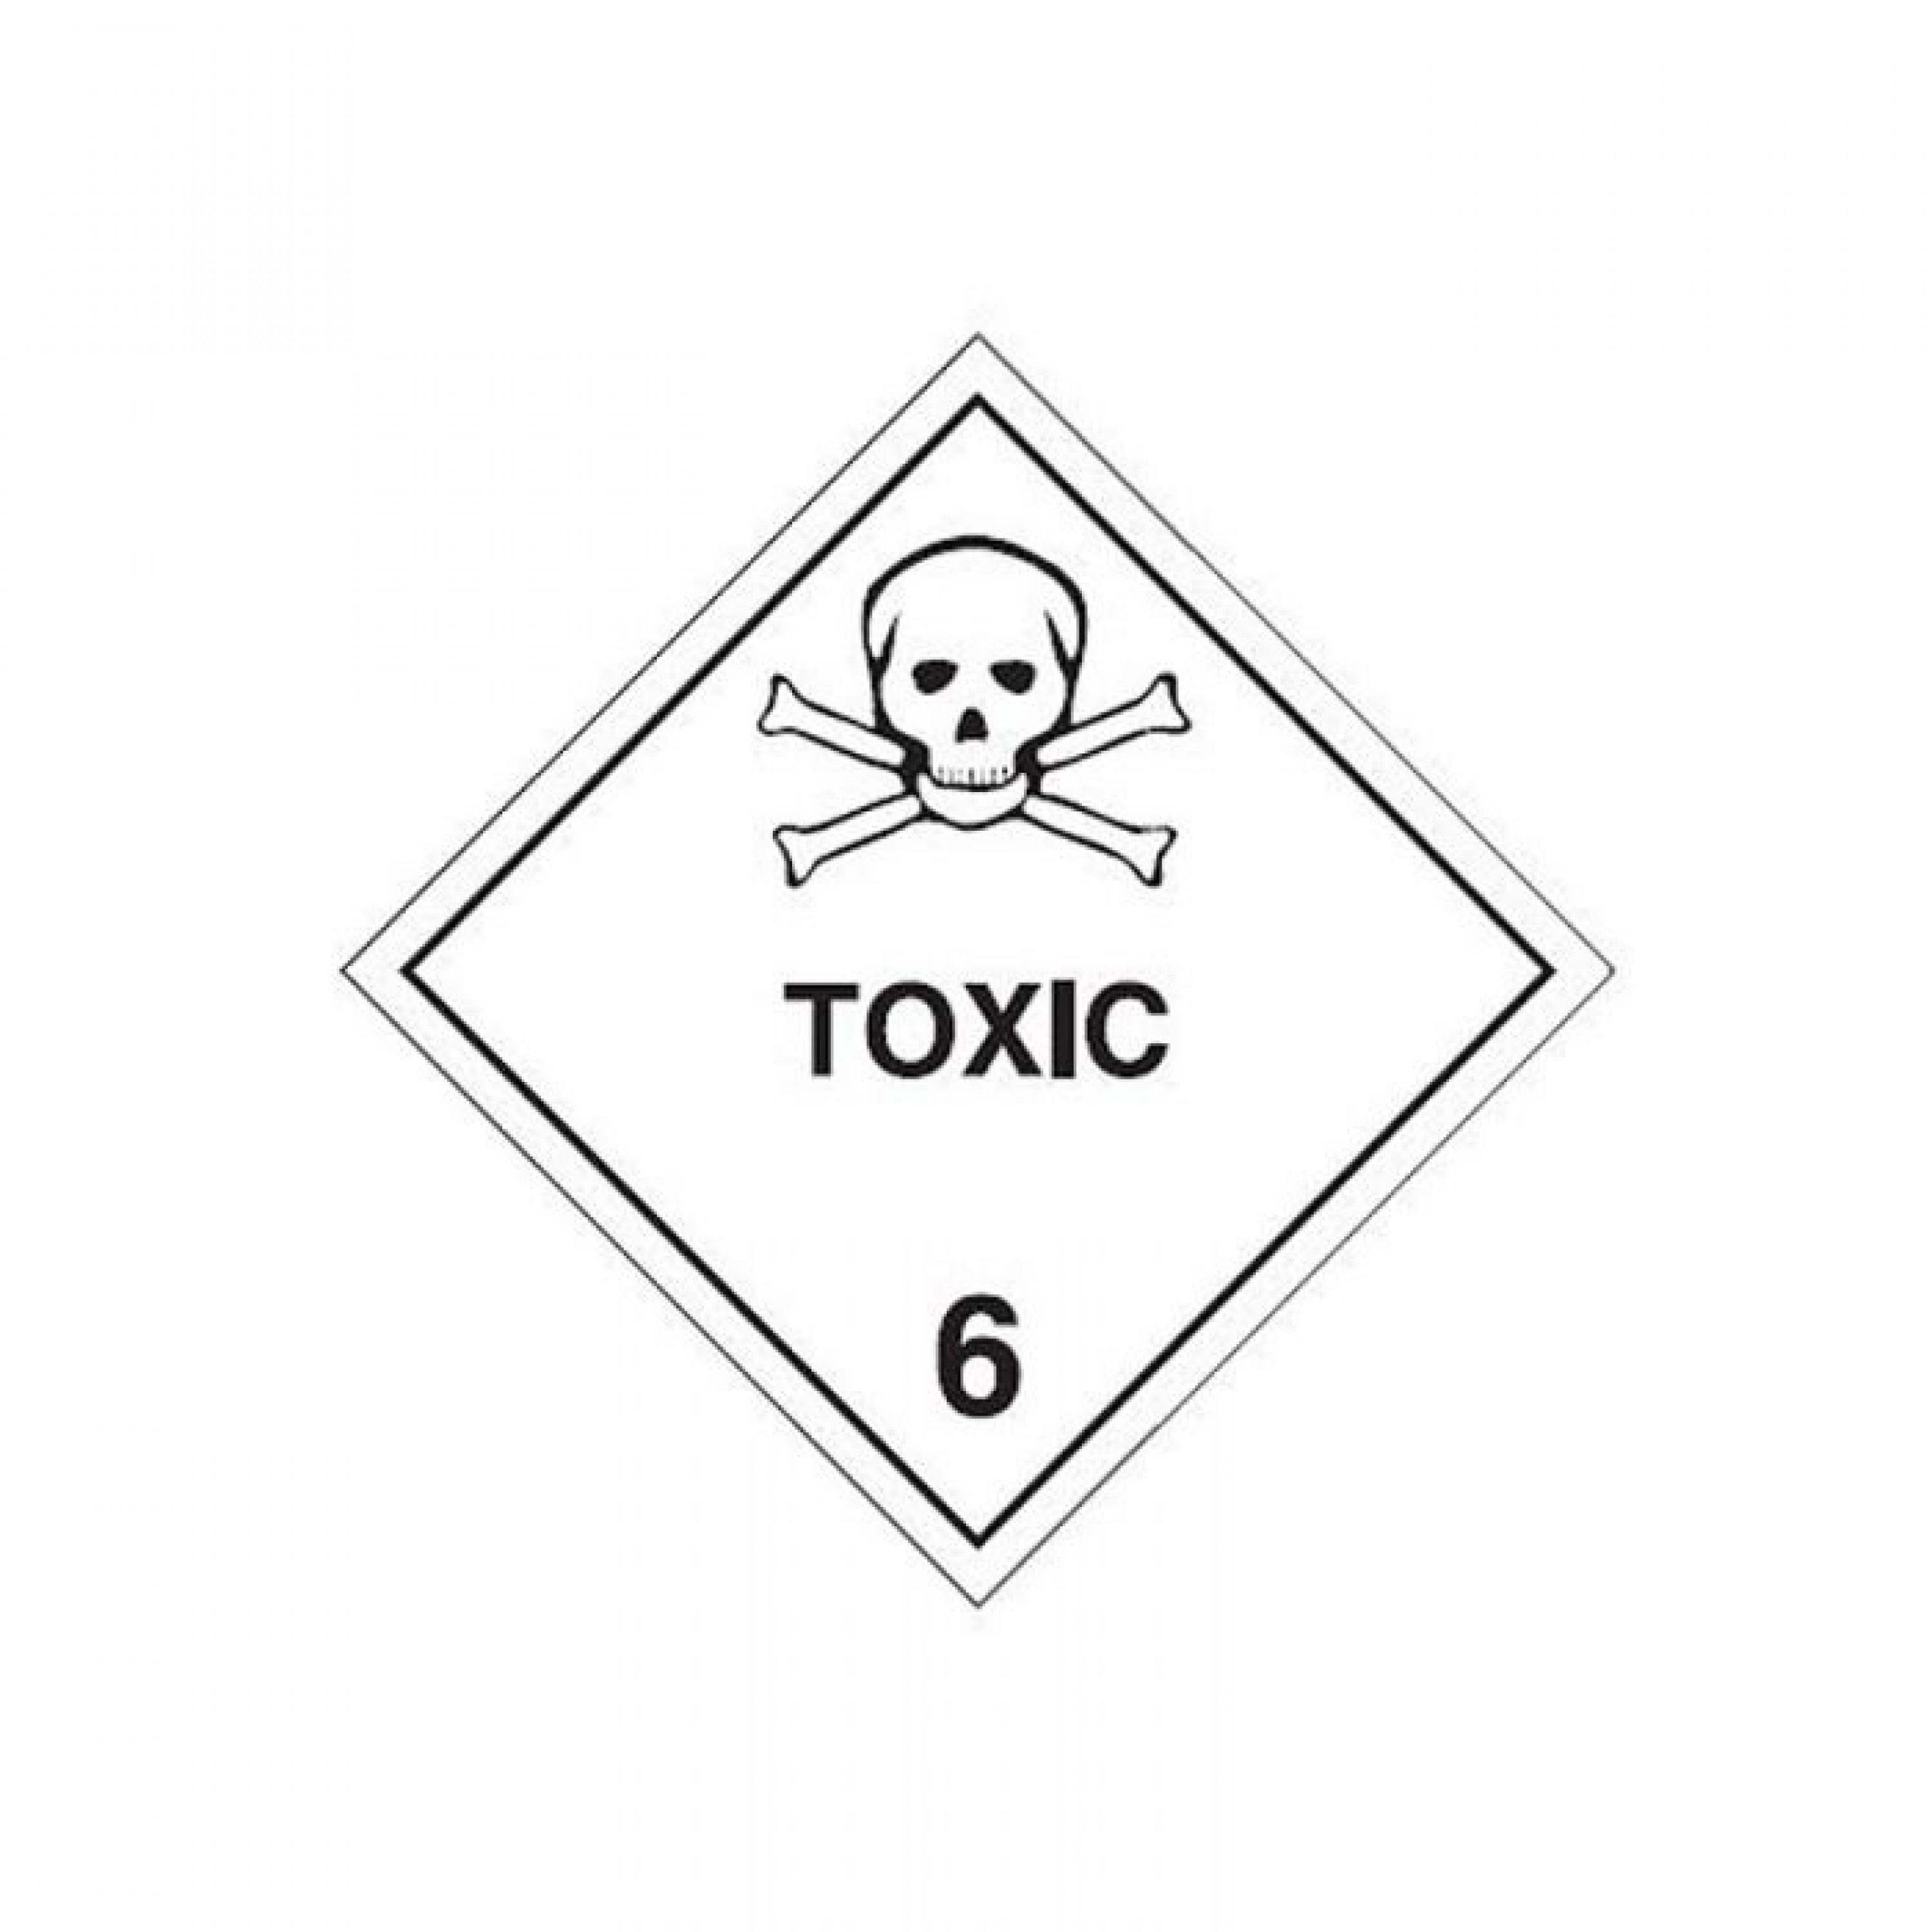 SIGN 'TOXIC 6'